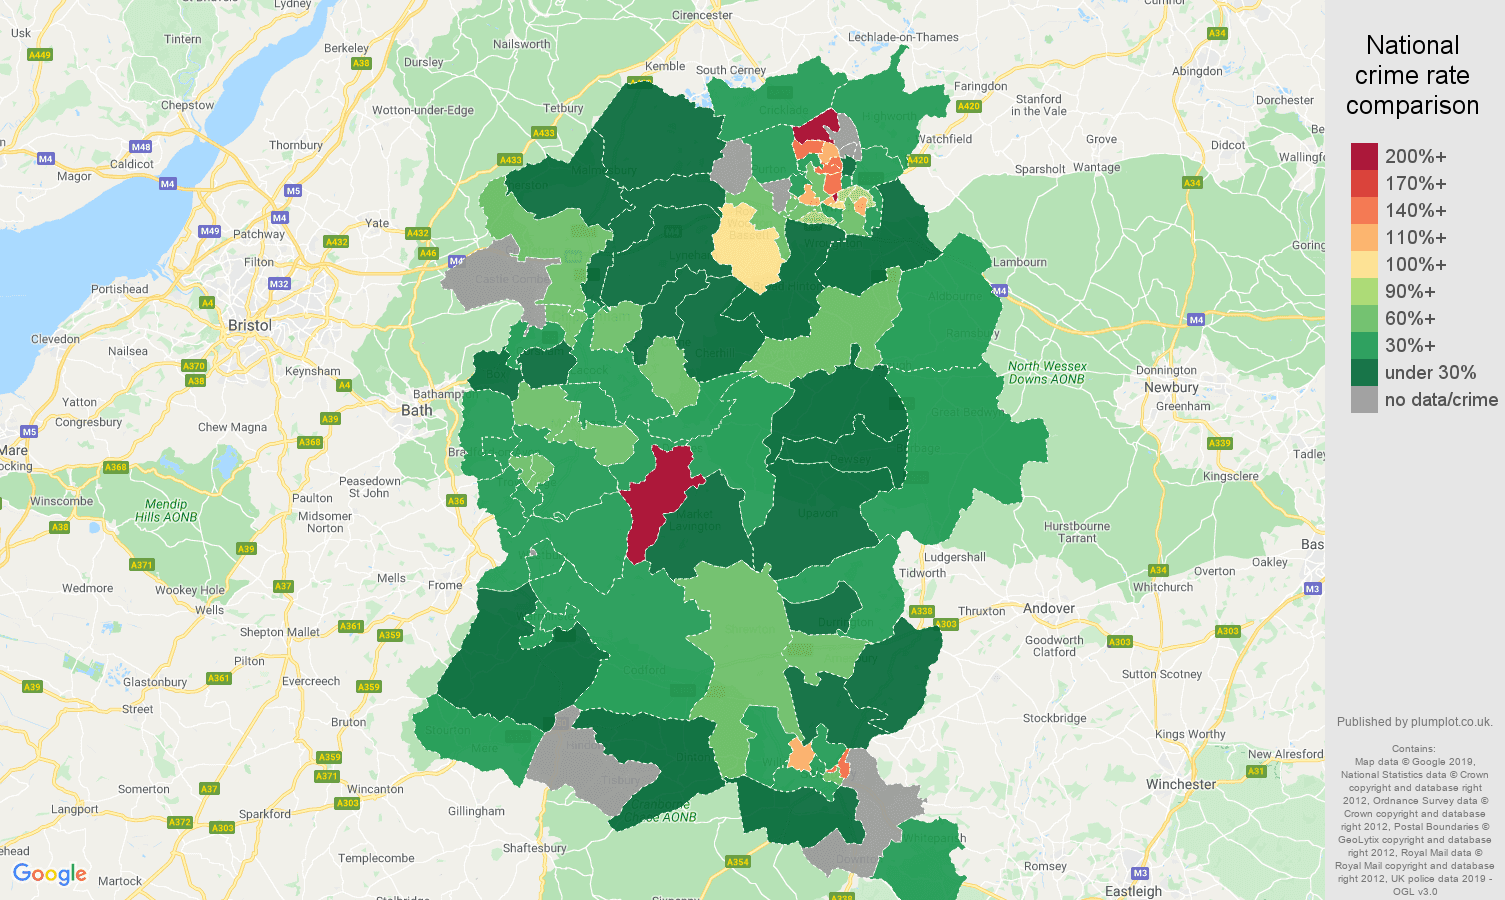 Wiltshire other crime rate comparison map